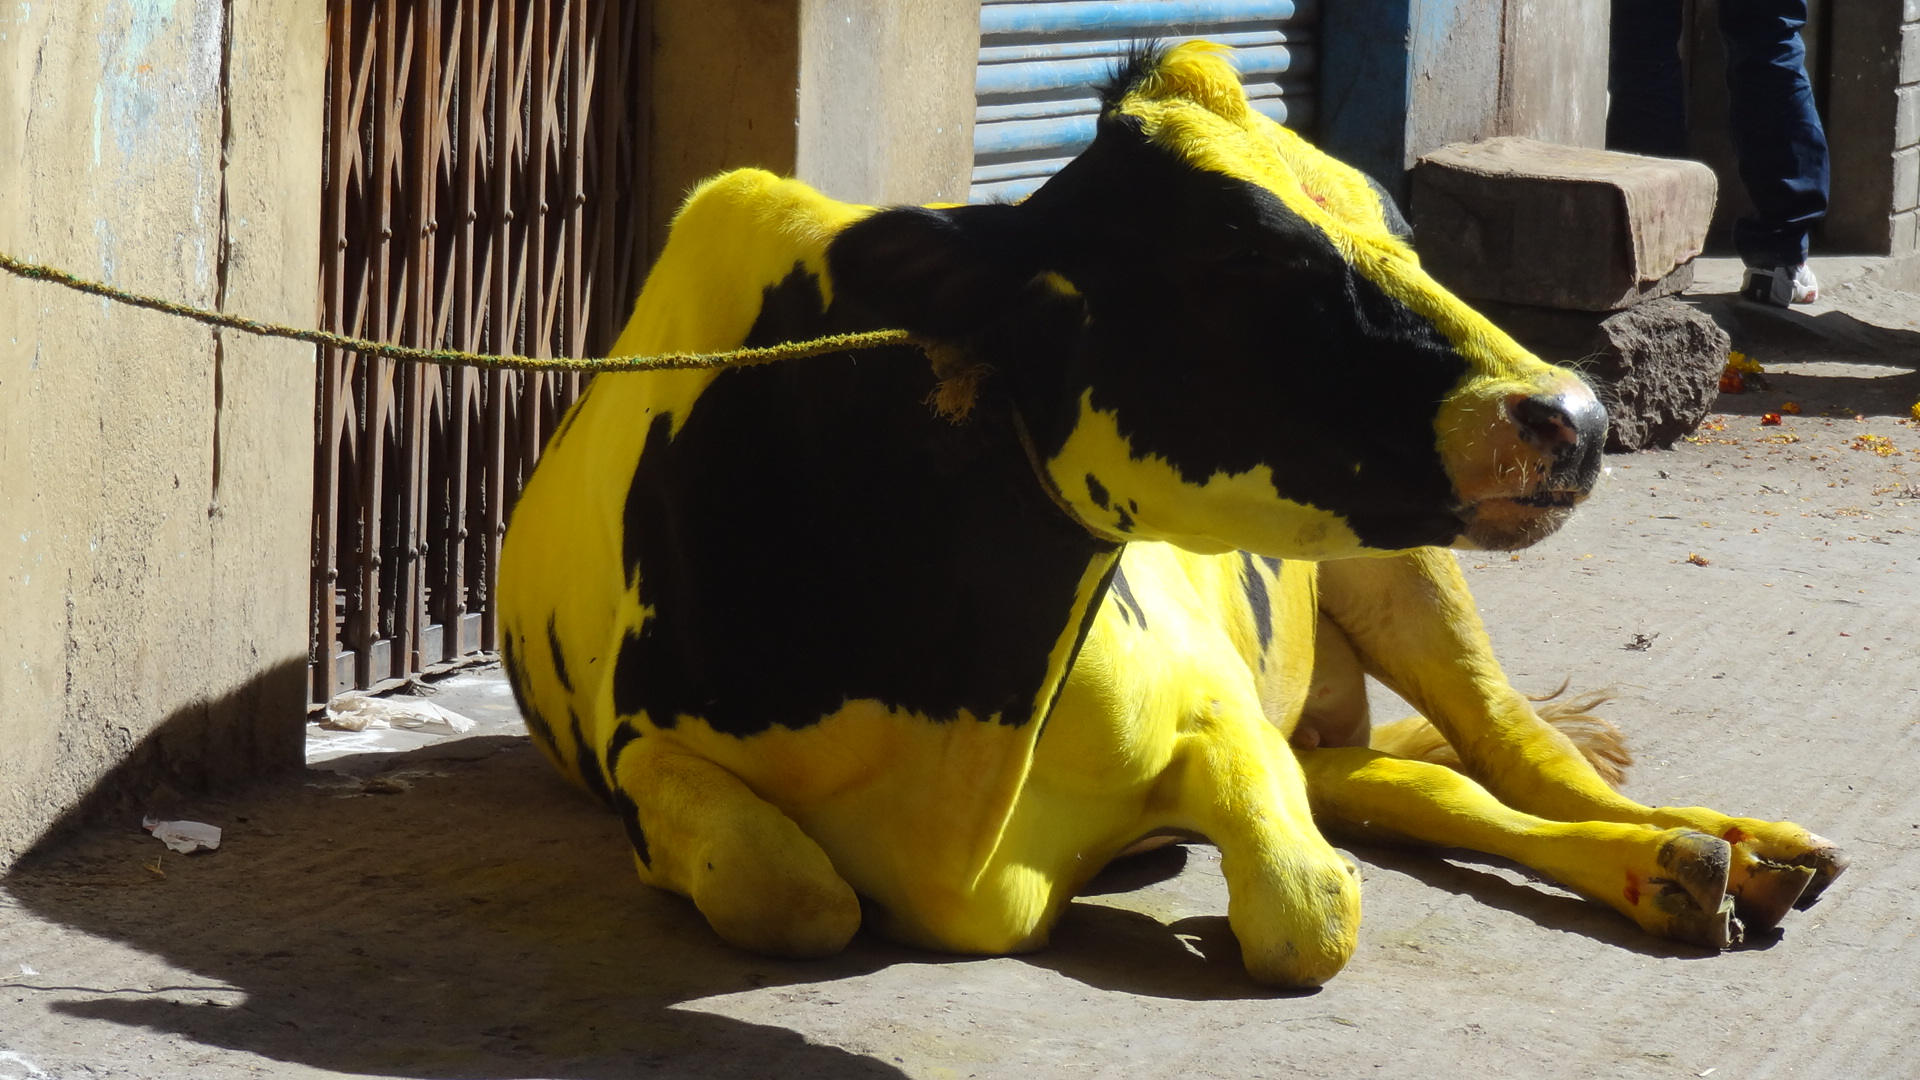 the yellow cow � the girl next door